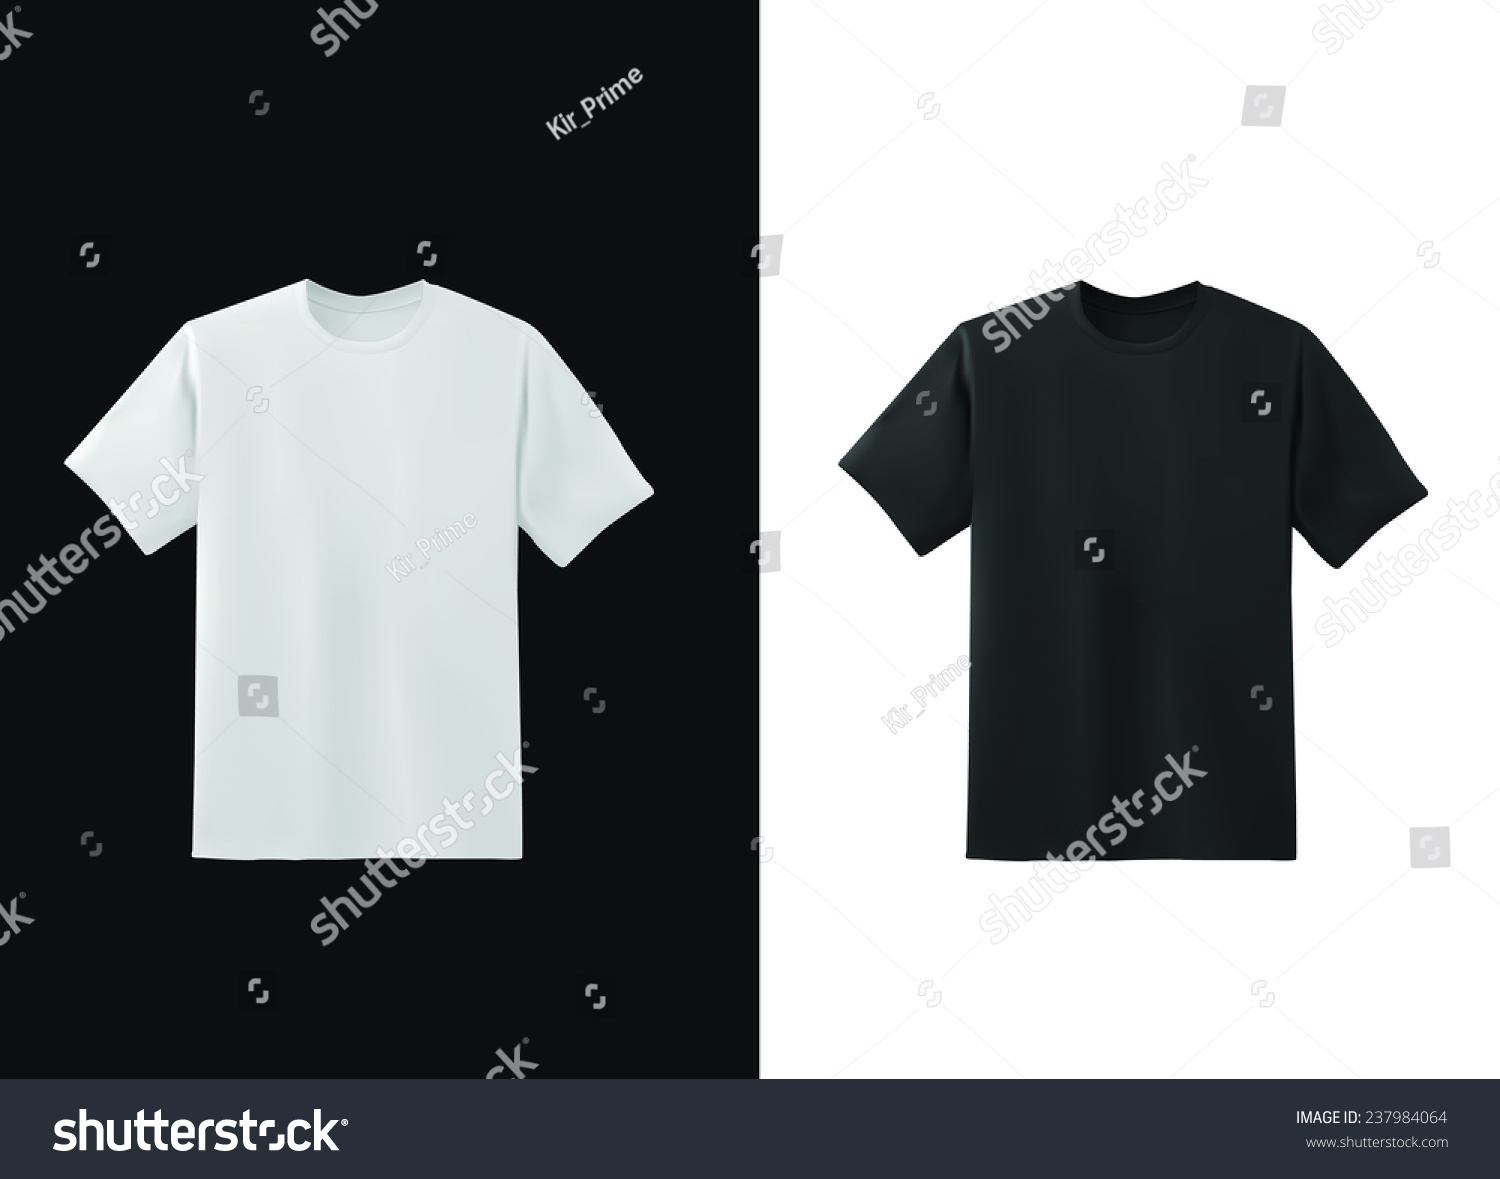 White t shirt eps - White And Black T Shirt Template Collection Vector Eps10 Illustration